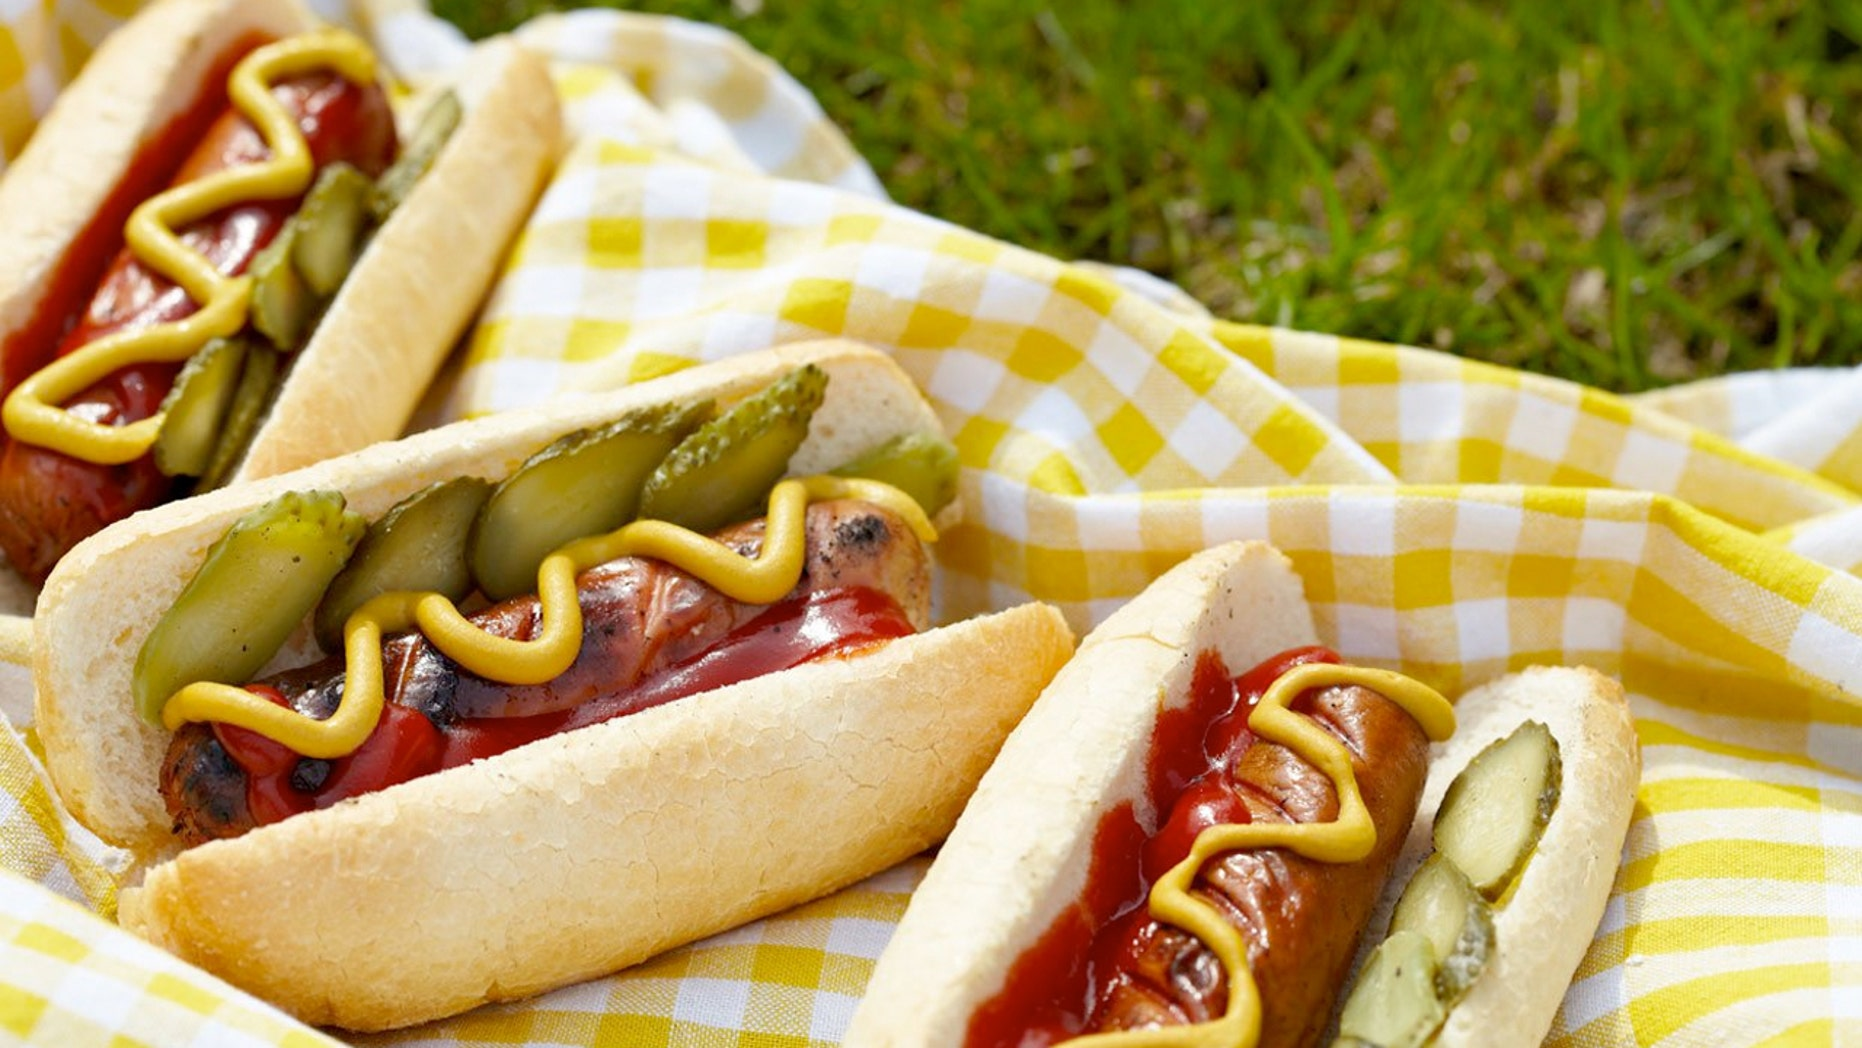 The report found human DNA in 2 percent of samples, two-thirds of which were vegetarian-labelled hot dogs.